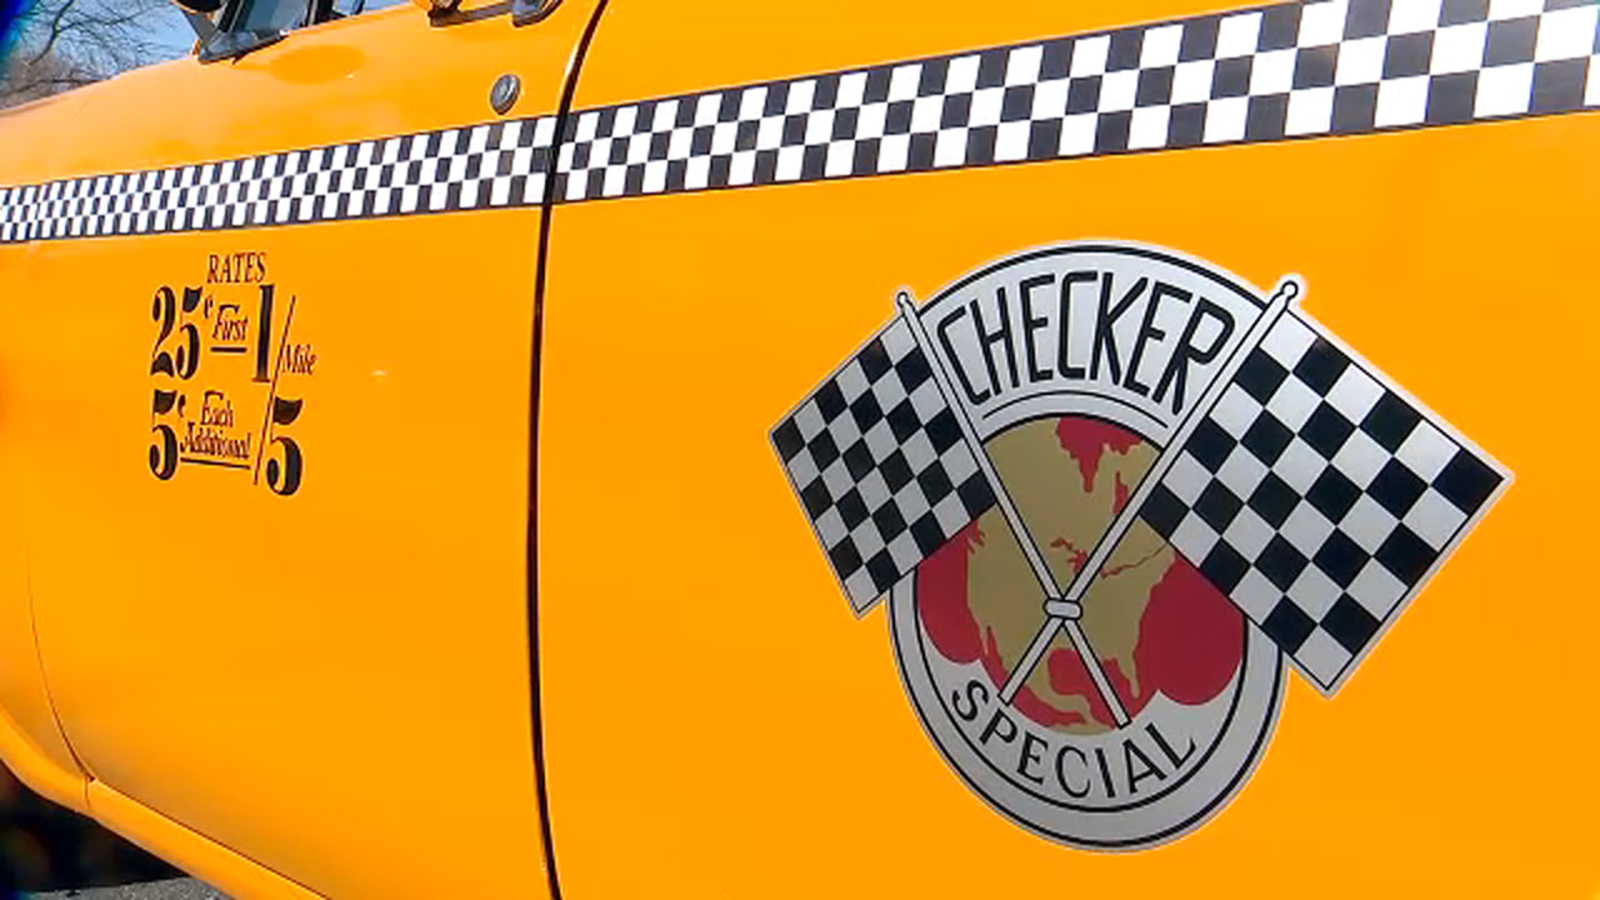 'The Checker Guy' brings classic cab to screens big and small